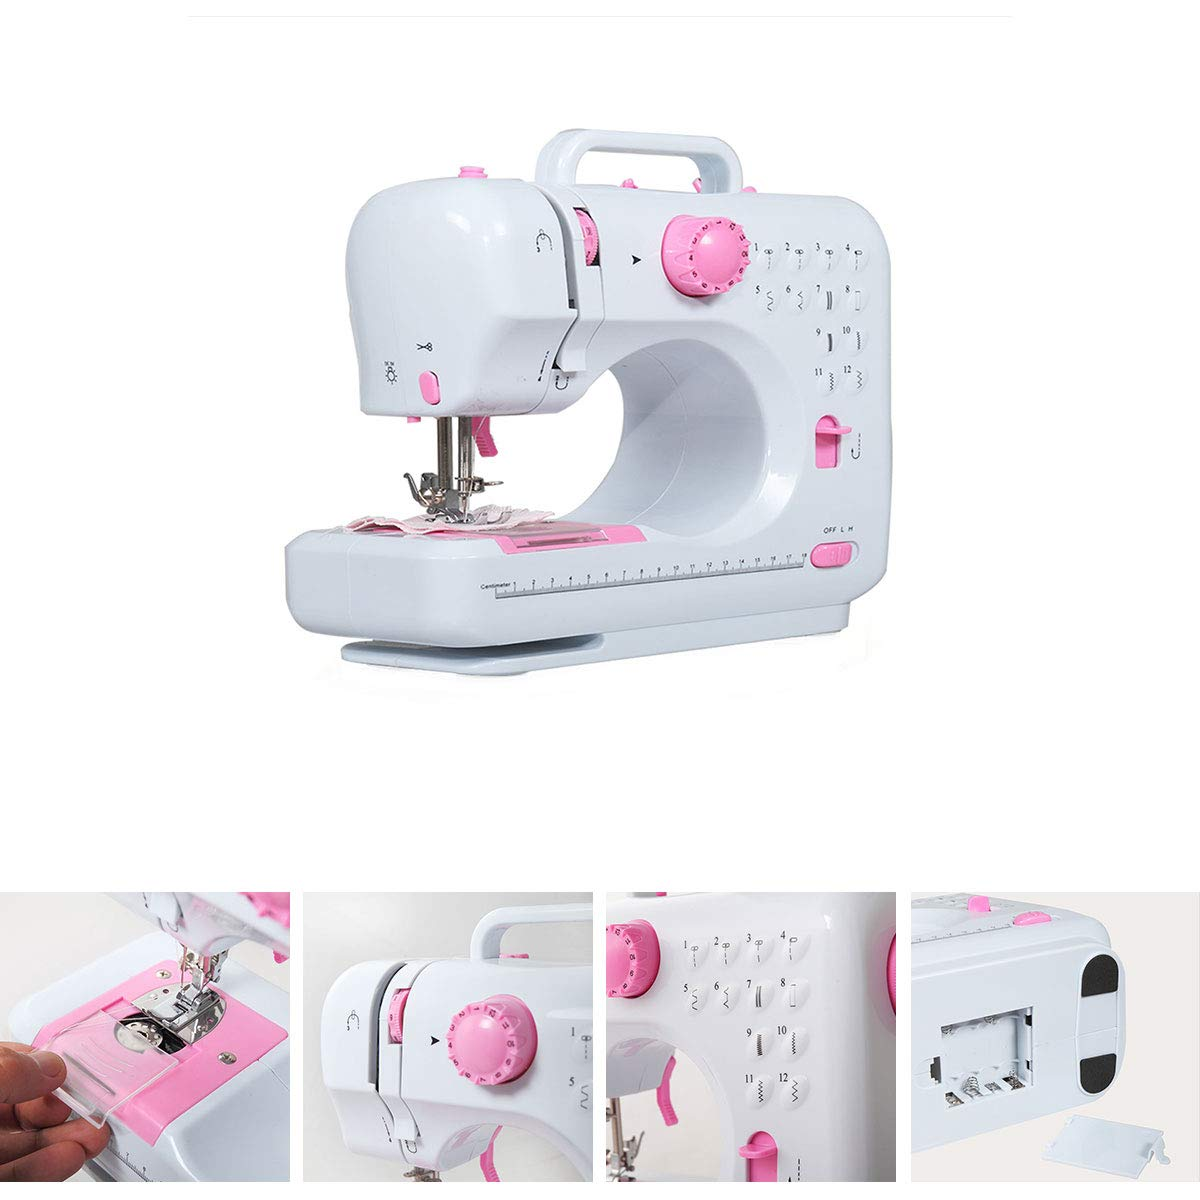 Mini Household Sewing Machine Double Speed and Thread 12 Built-in Stitches with Presser Foot Pedal Embroidery Machine